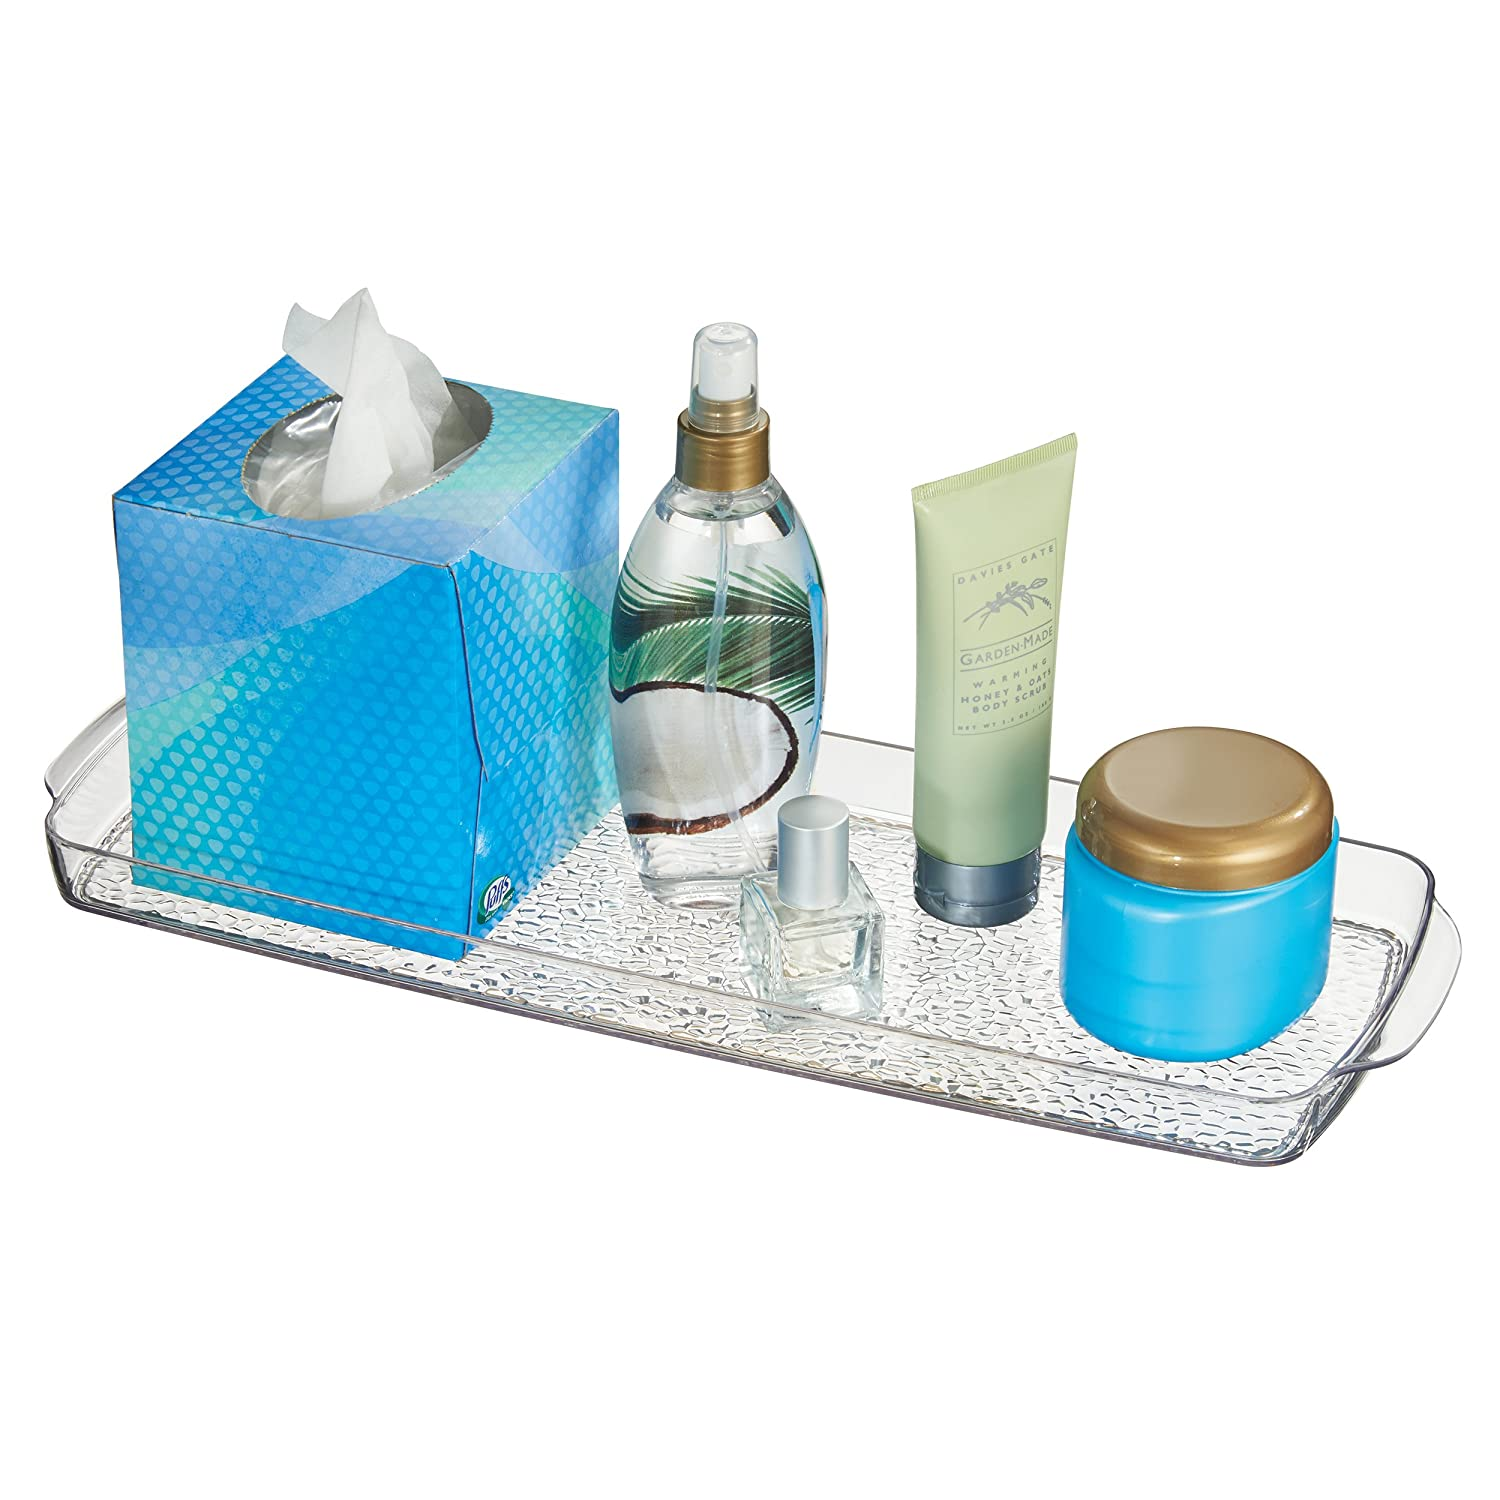 Amazon.com: mDesign Bathroom Countertop or Toilet Tank Storage Tray ...